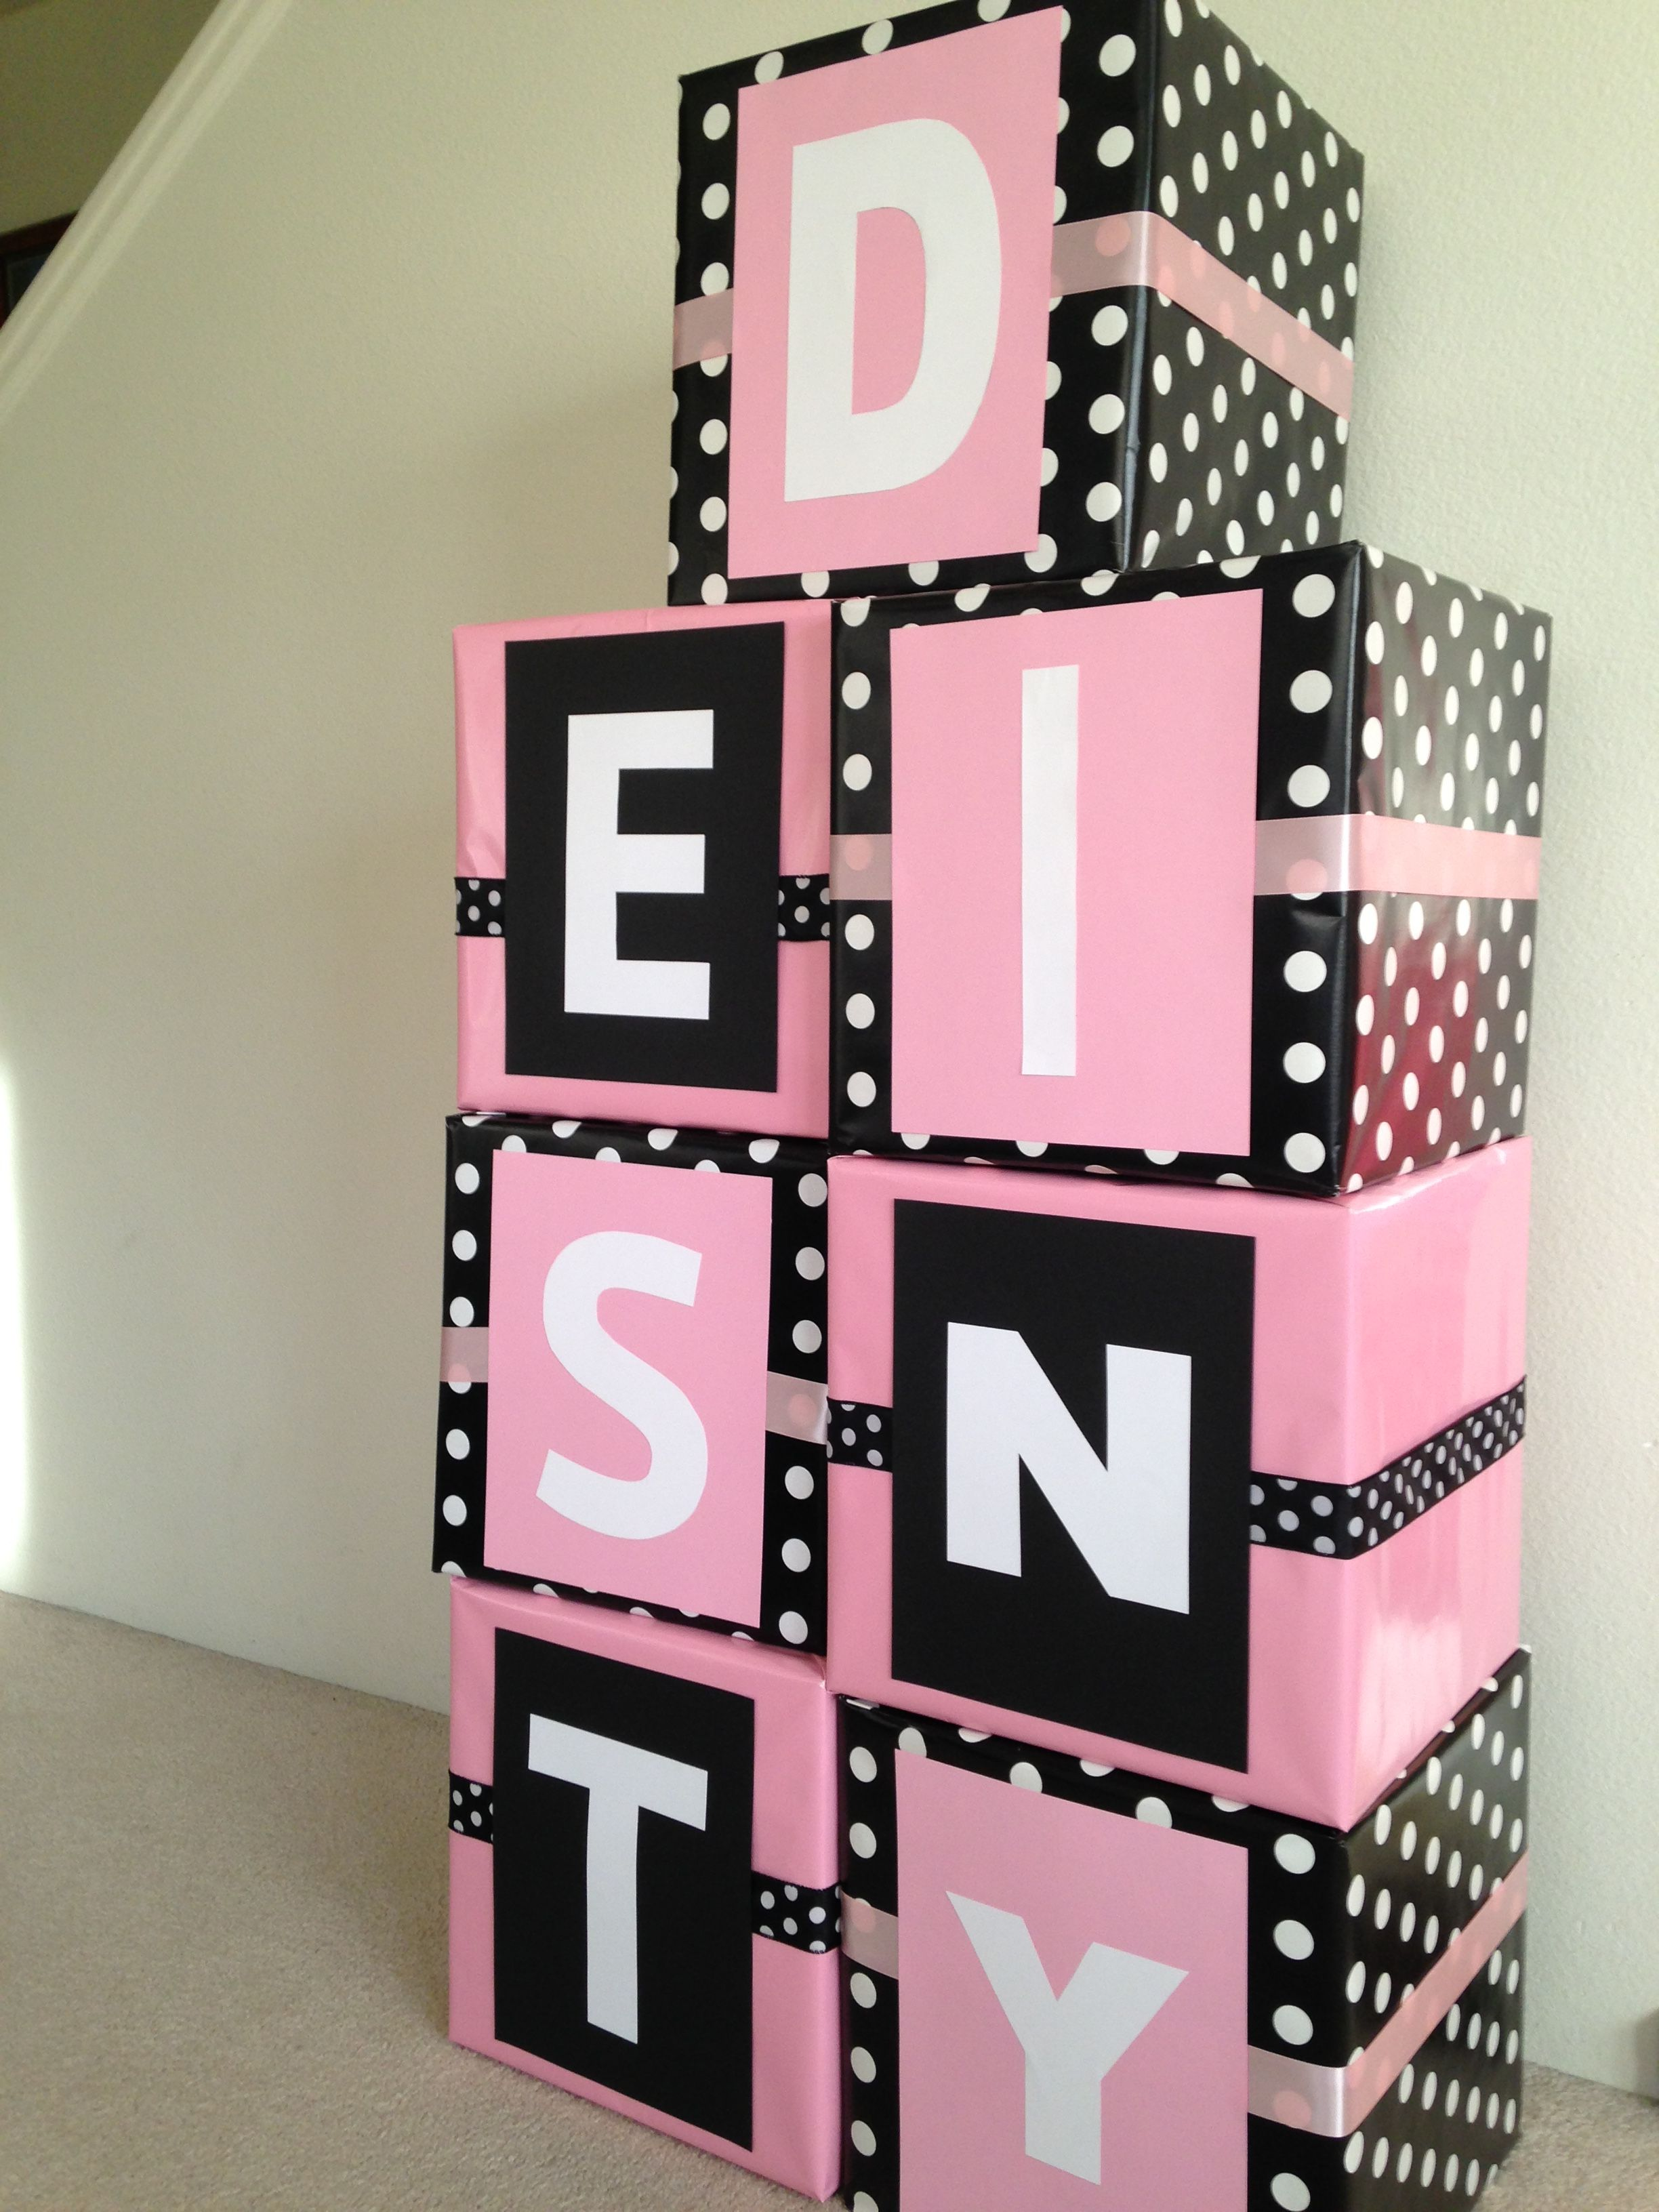 Good Black And Pink Baby Shower Part - 14: Black/White Polka Dot And Pink Baby Shower. Baby Girl. Baby Blocks Of